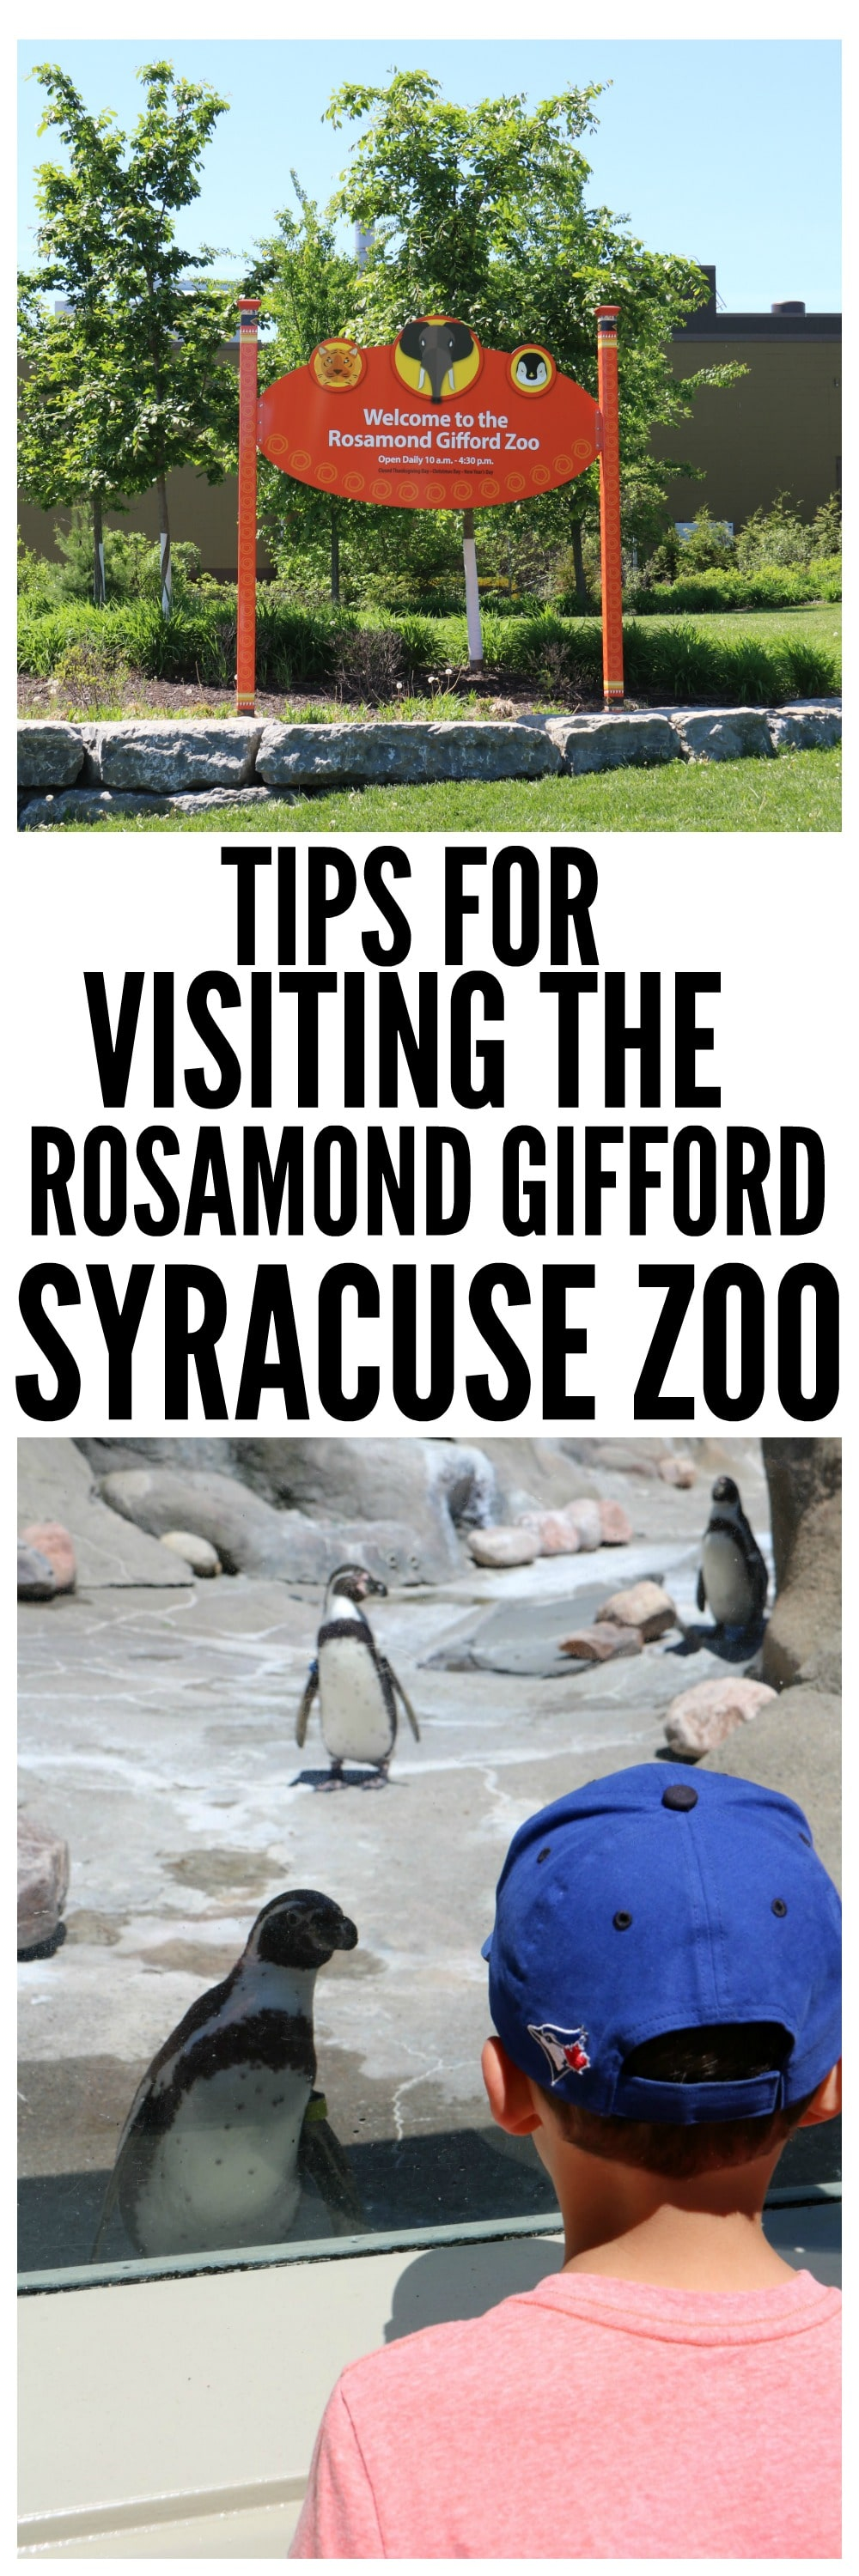 Visiting the Syracuse Zoo